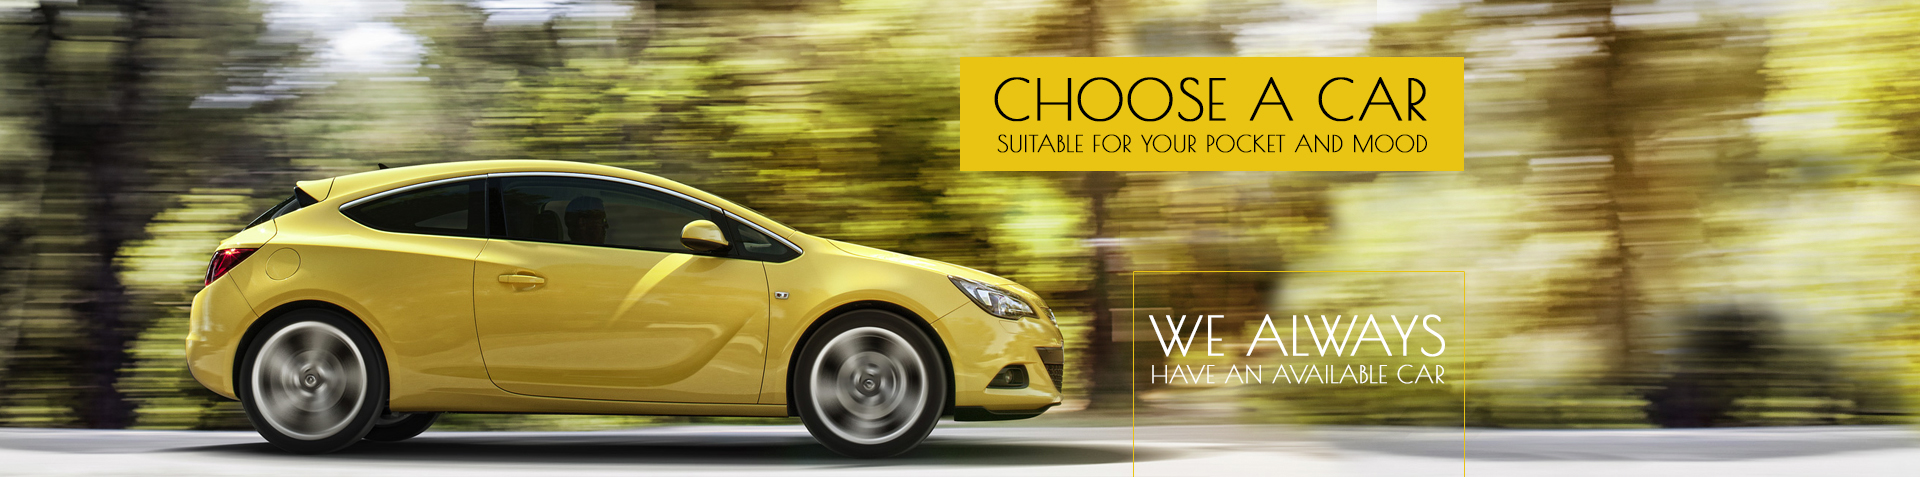 Choose a car suitable for your pocket and mood!  We always have an available car!